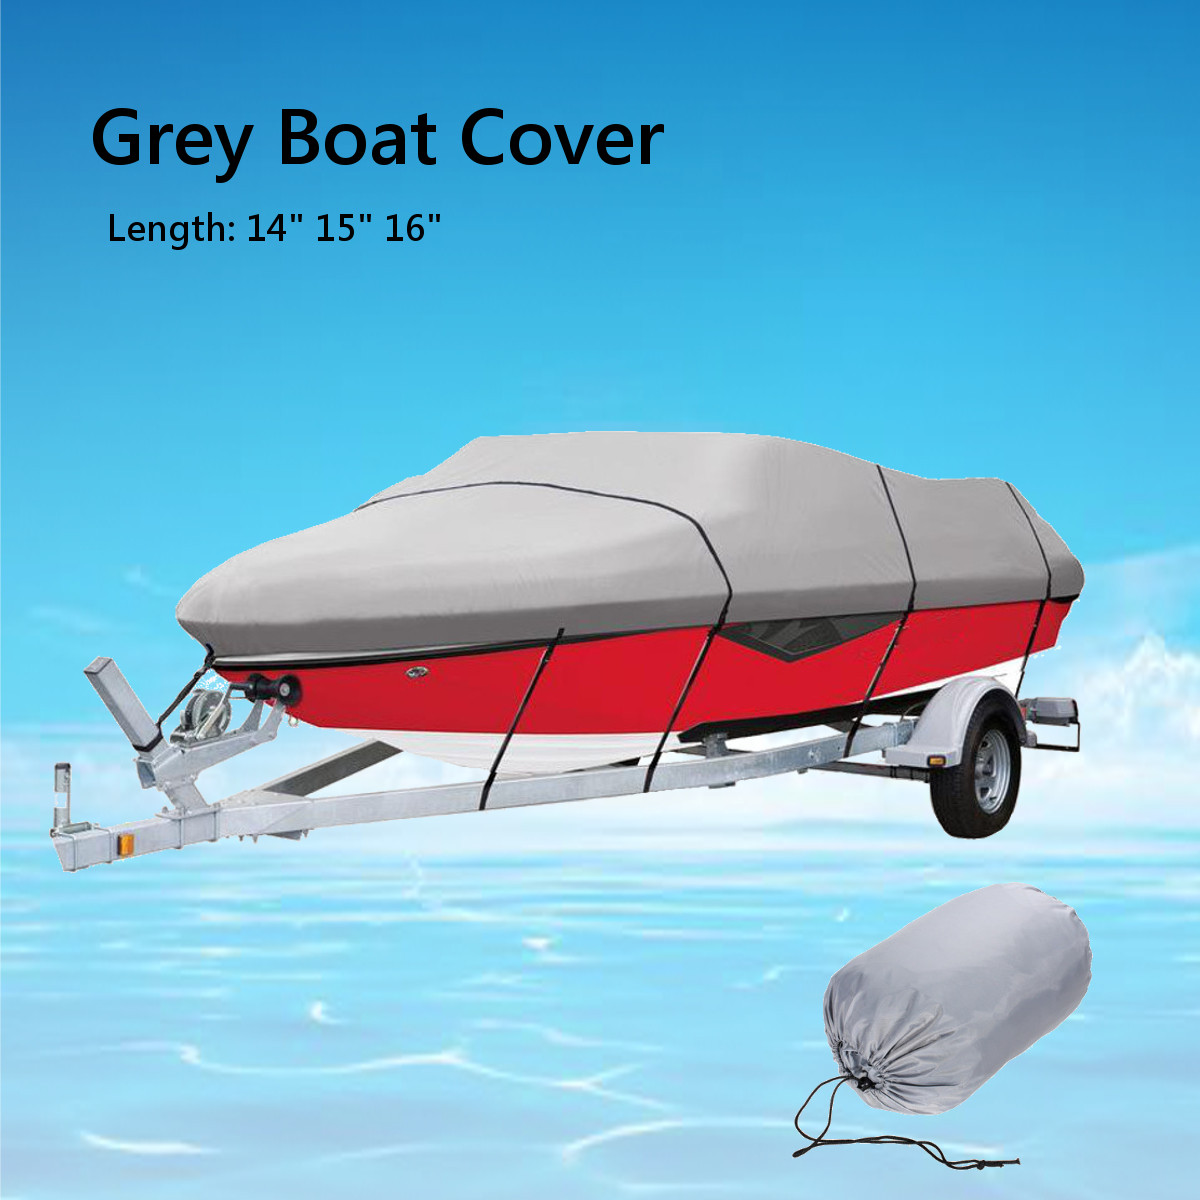 530X290cm V-Hull Trailerable Boat Cover Waterproof Fishing Ski Bass for Speedboat V-shape Grey530X290cm V-Hull Trailerable Boat Cover Waterproof Fishing Ski Bass for Speedboat V-shape Grey